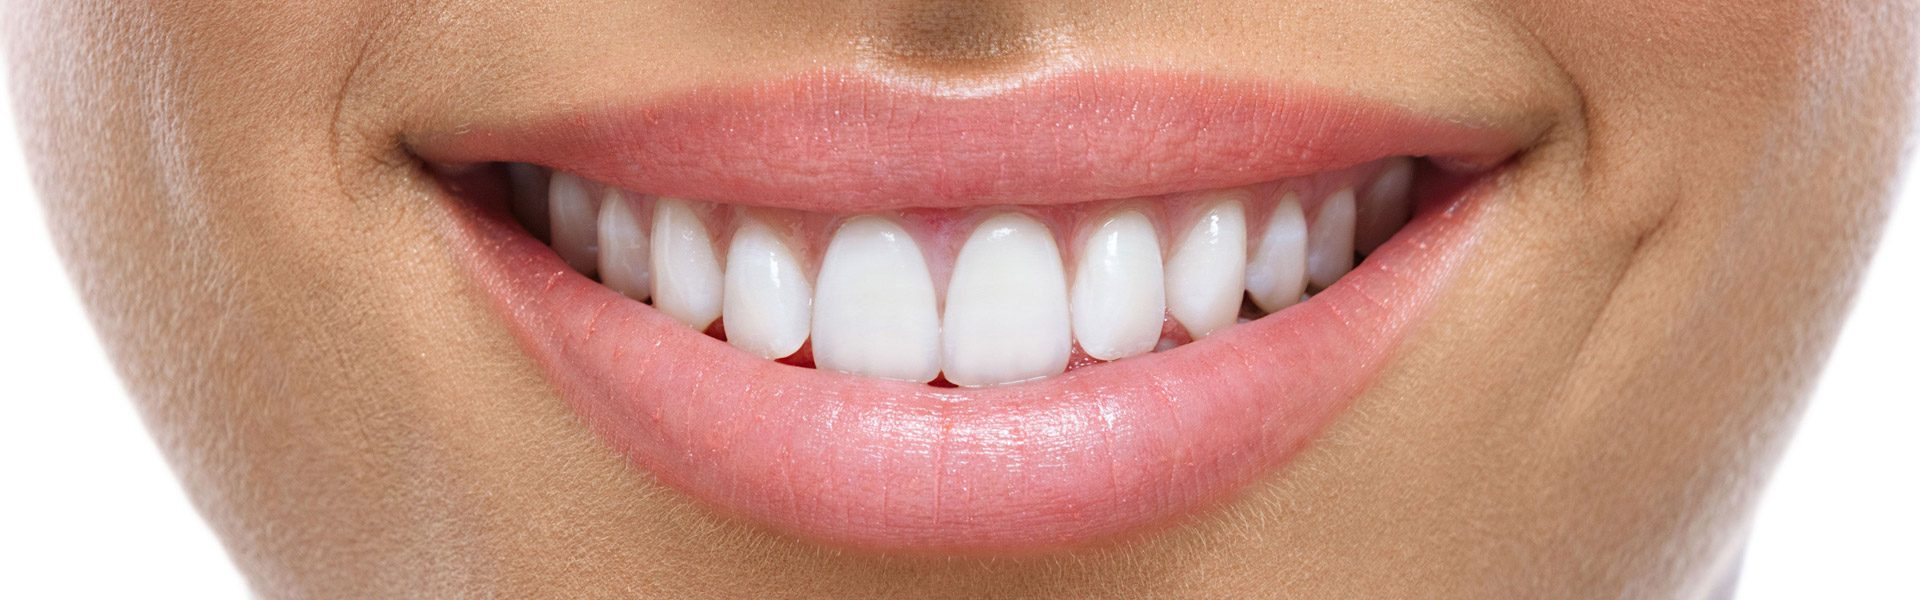 Snap-On Smile vs. Porcelain Veneers: Which to Choose?